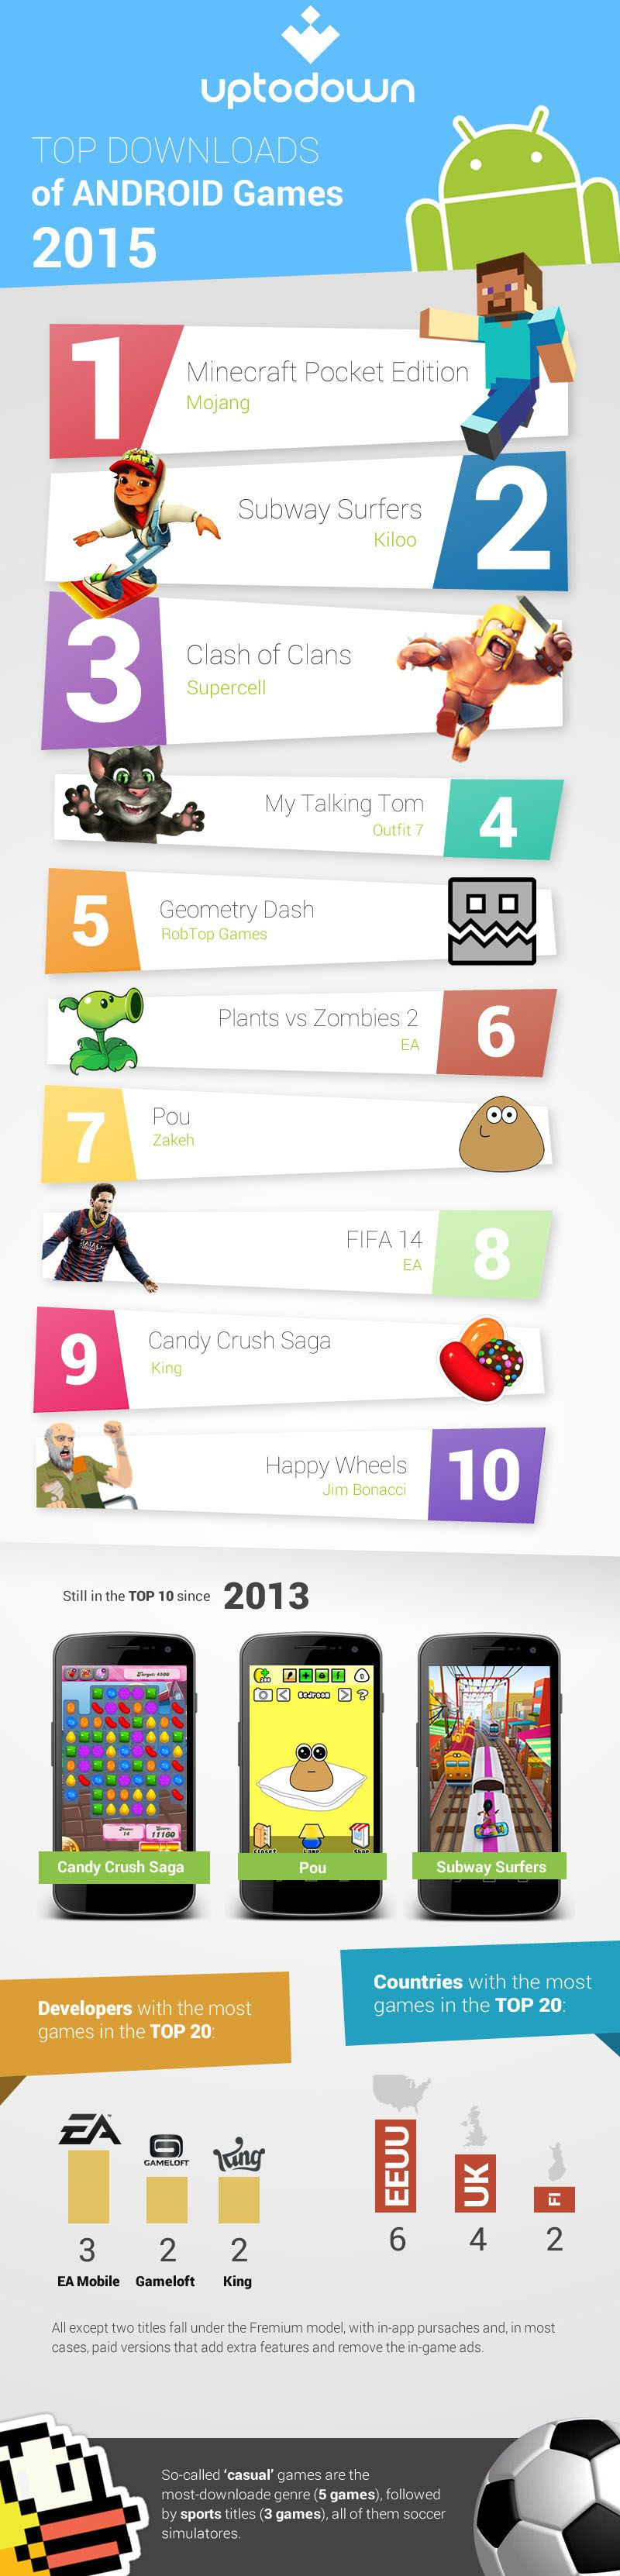 top-games-android-2015